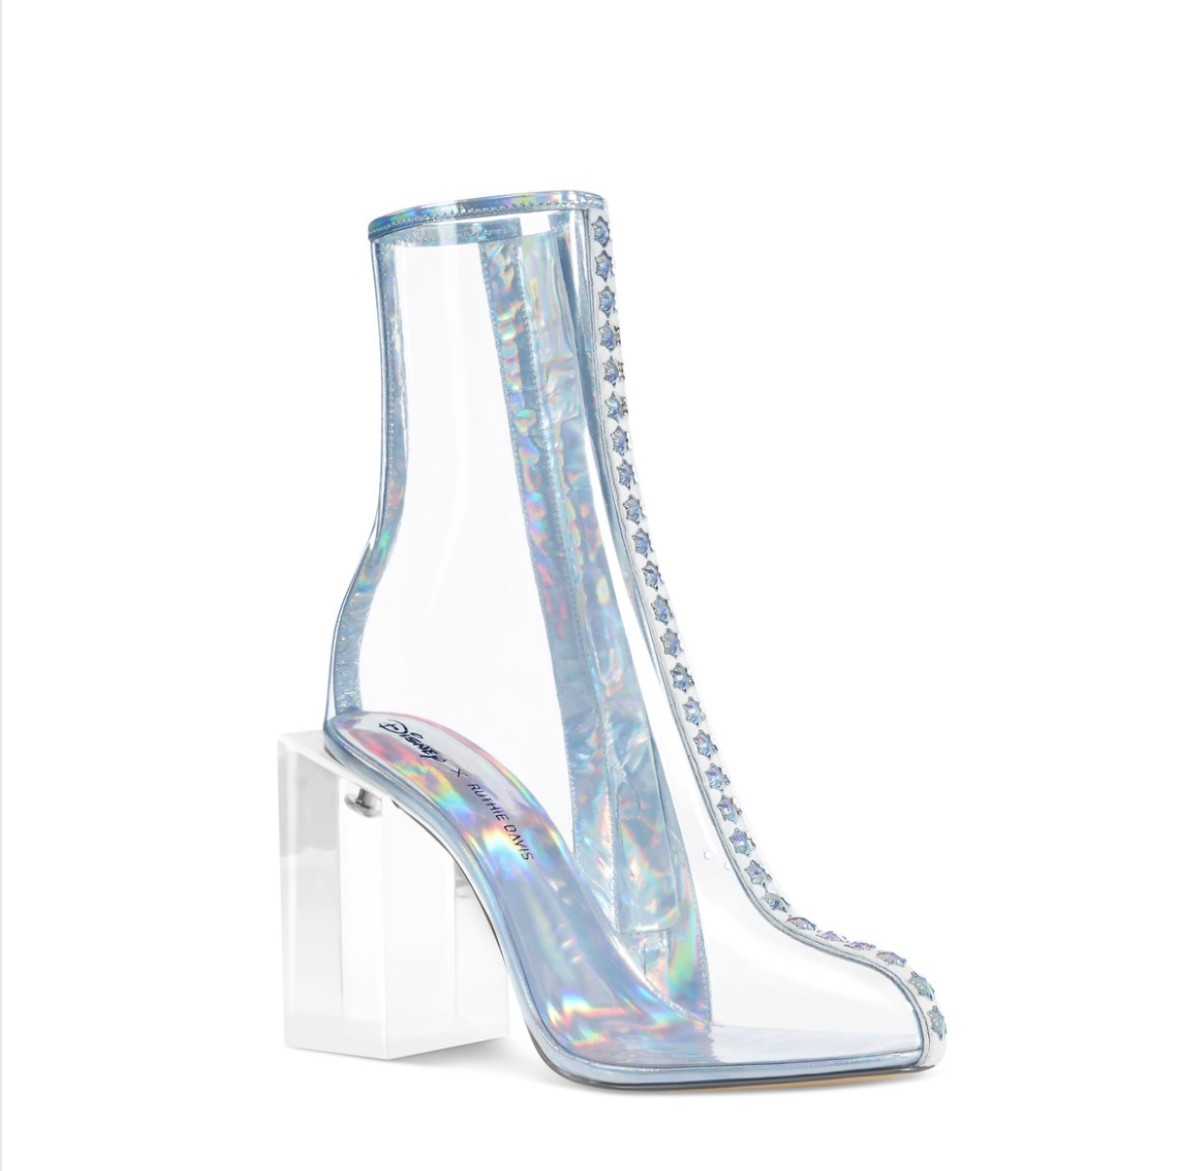 New Frozen 2 Inspired Designer Shoes from Ruthie Davis 6